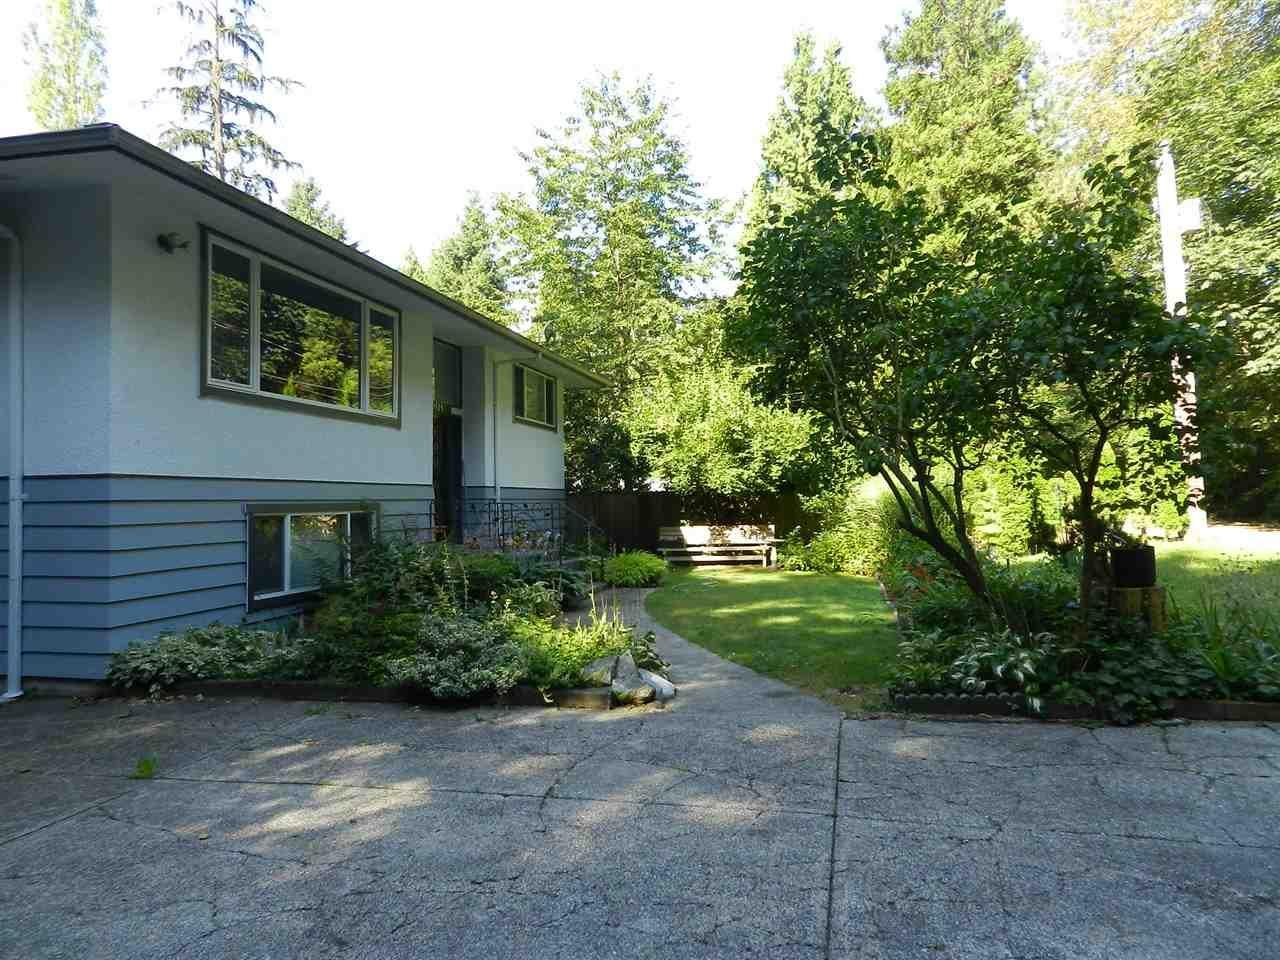 R2124641 - 15550 106 AVENUE, Guildford, Surrey, BC - House/Single Family